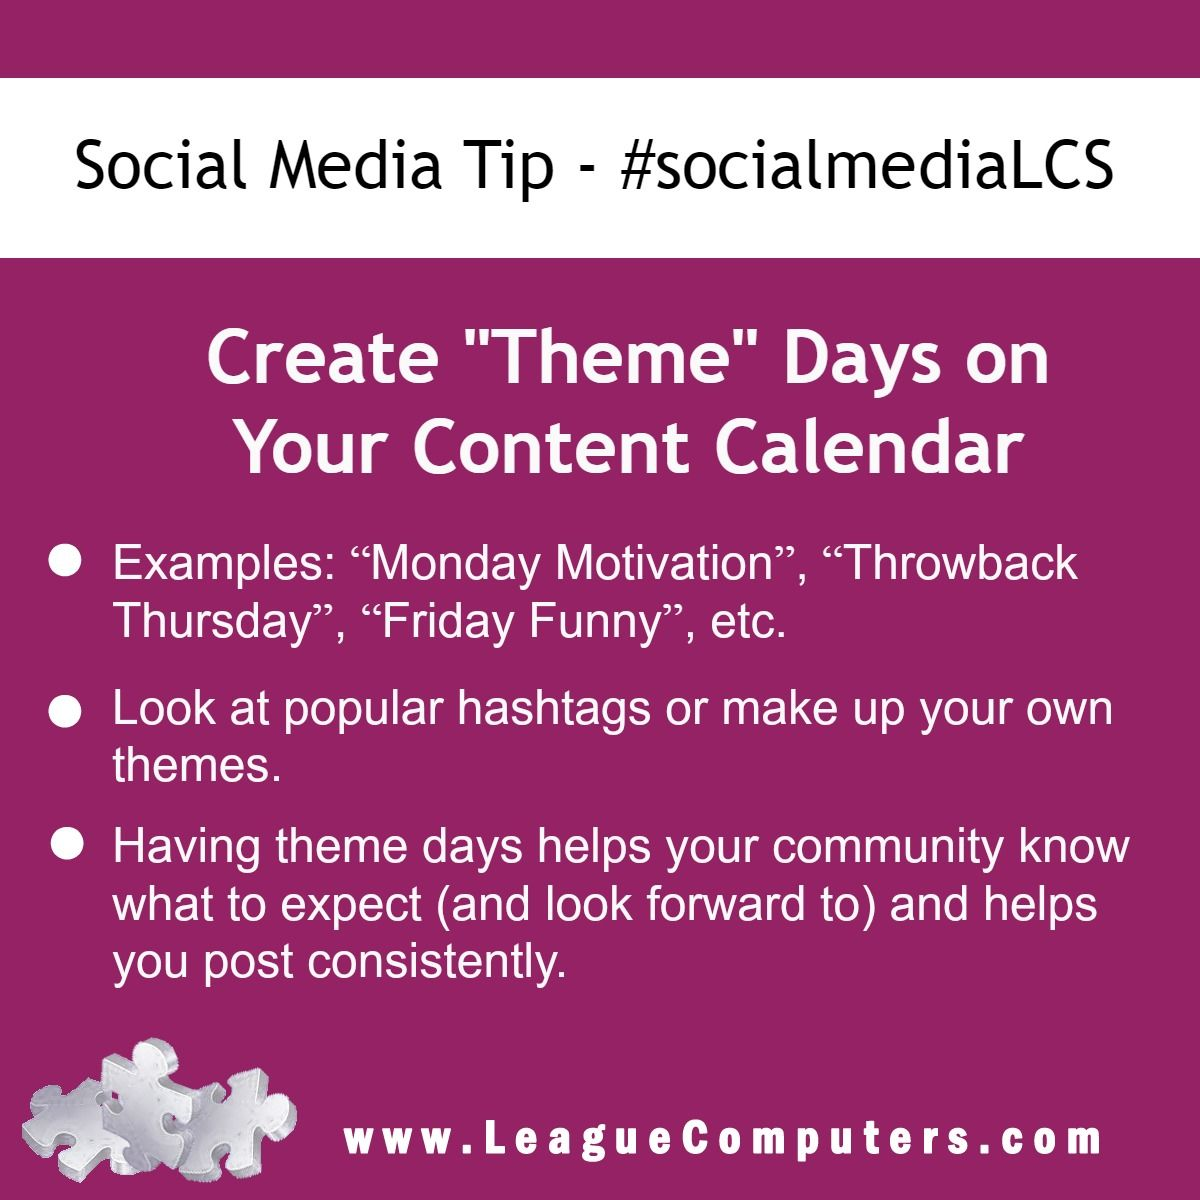 Social Media Tip Create Theme Days On Your Content Calendar